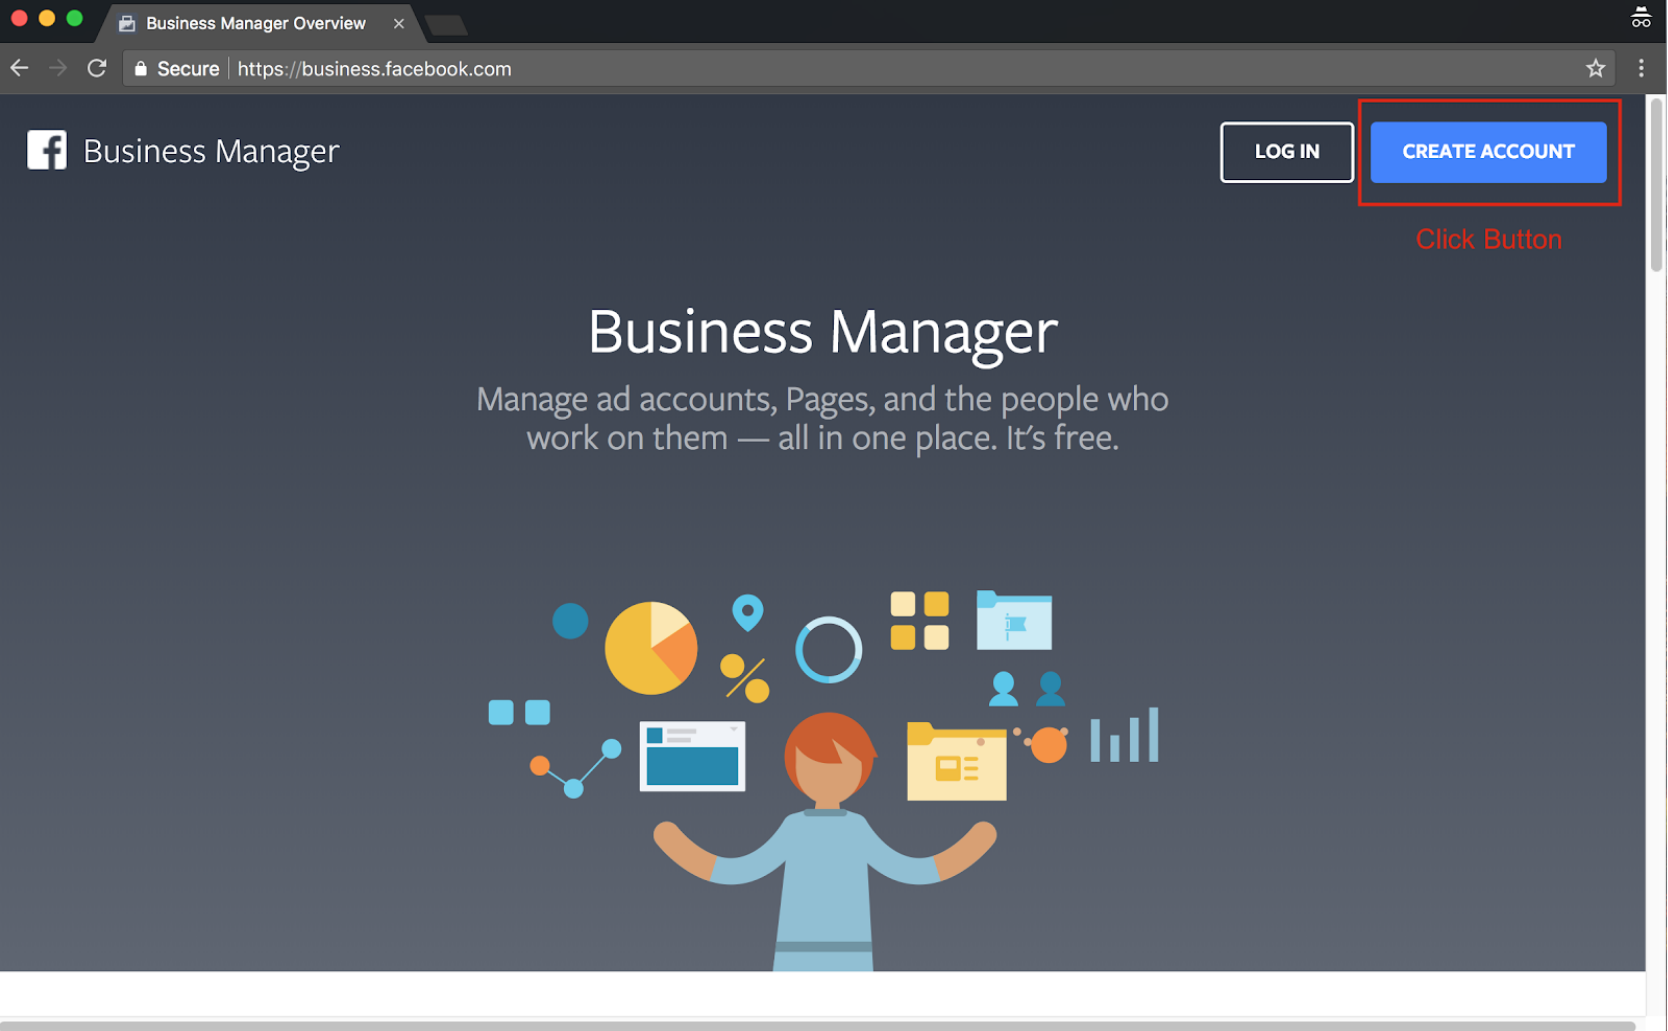 Sign Up for Facebook Business Manager - Step 2 Screenshot